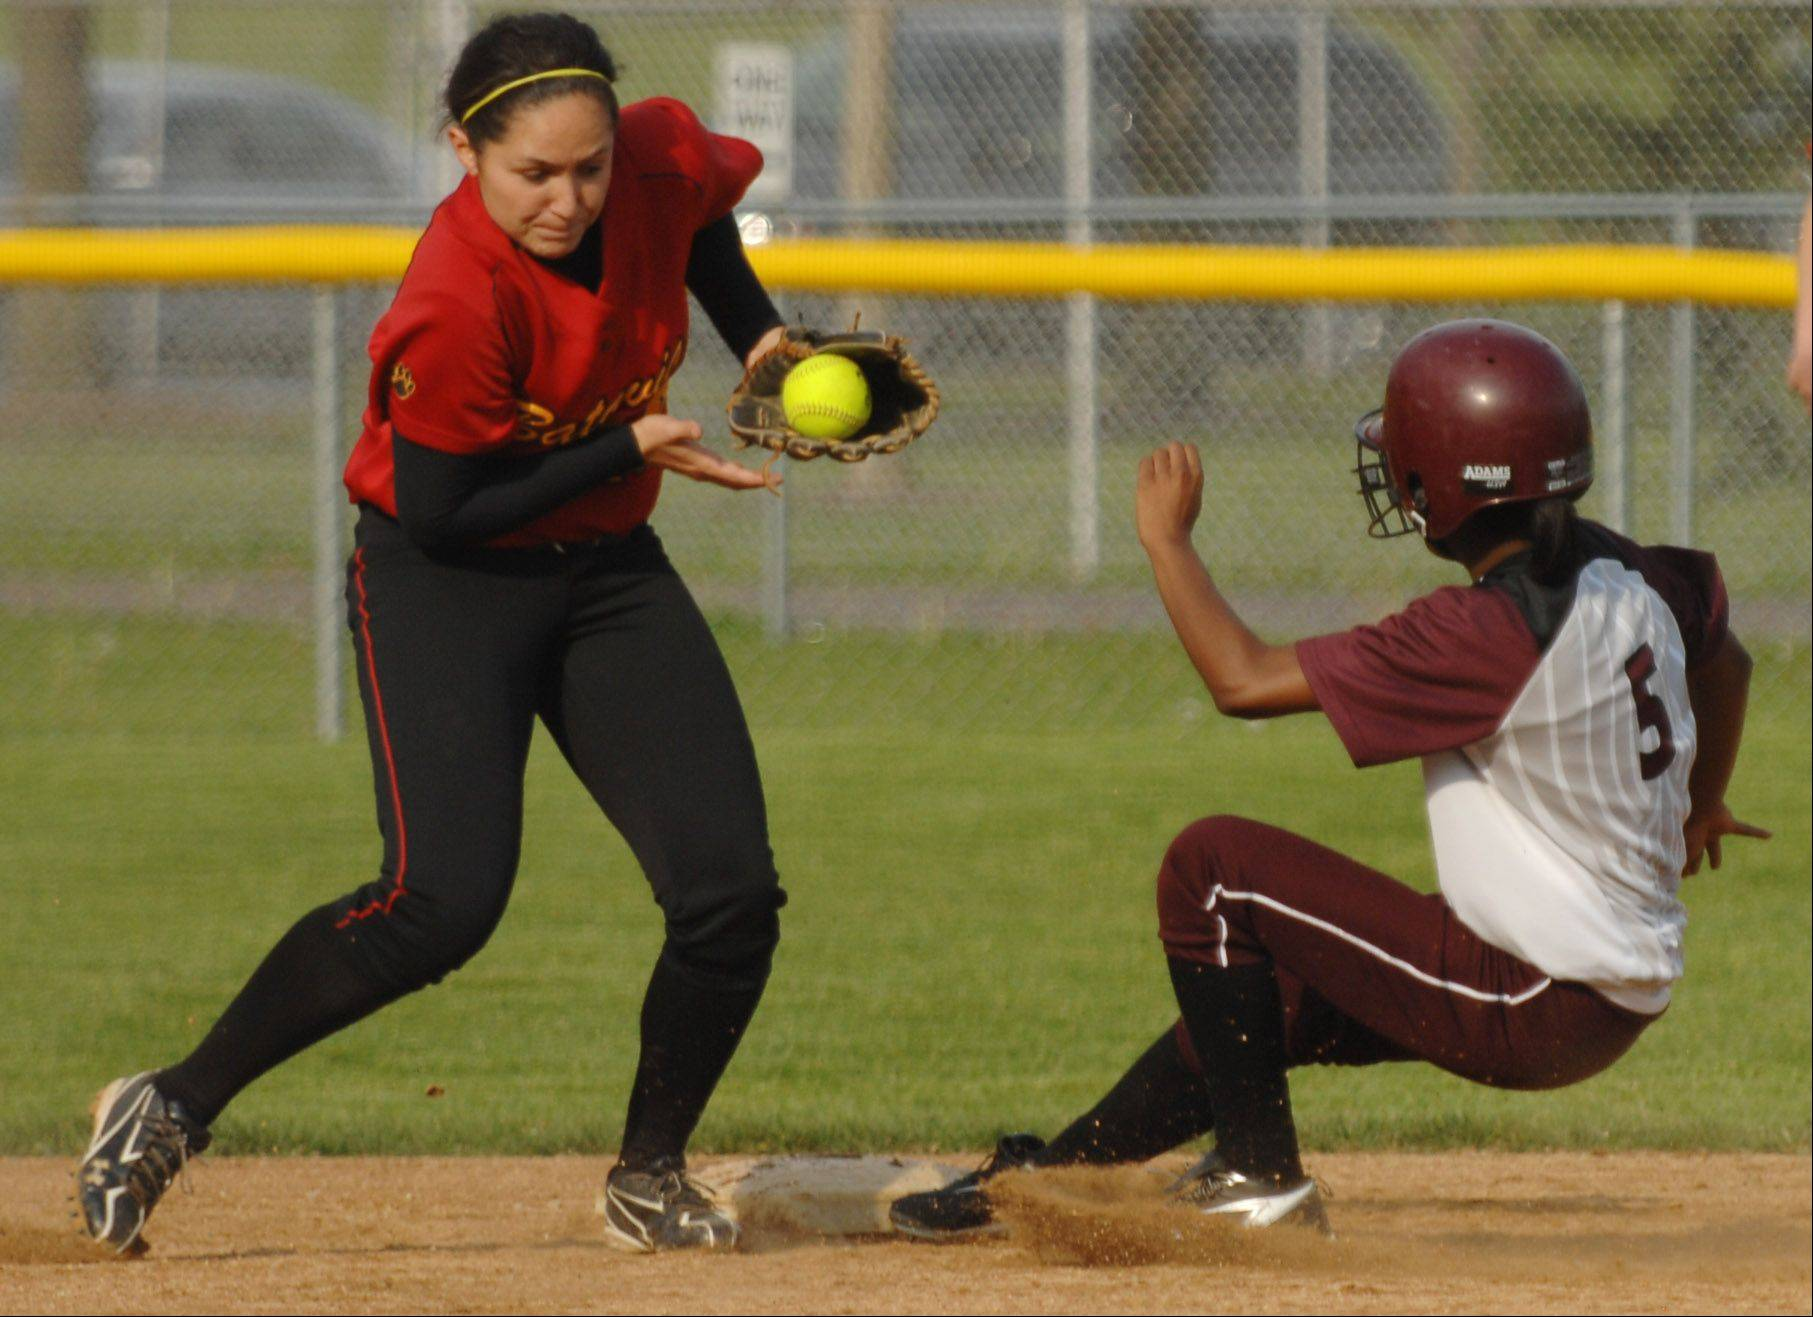 Elgin's Kenyatta Scales reaches second base ahead of the throw caught by Batavia shortstop Sami Villarreal for a stolen base Wednesday in Elgin.